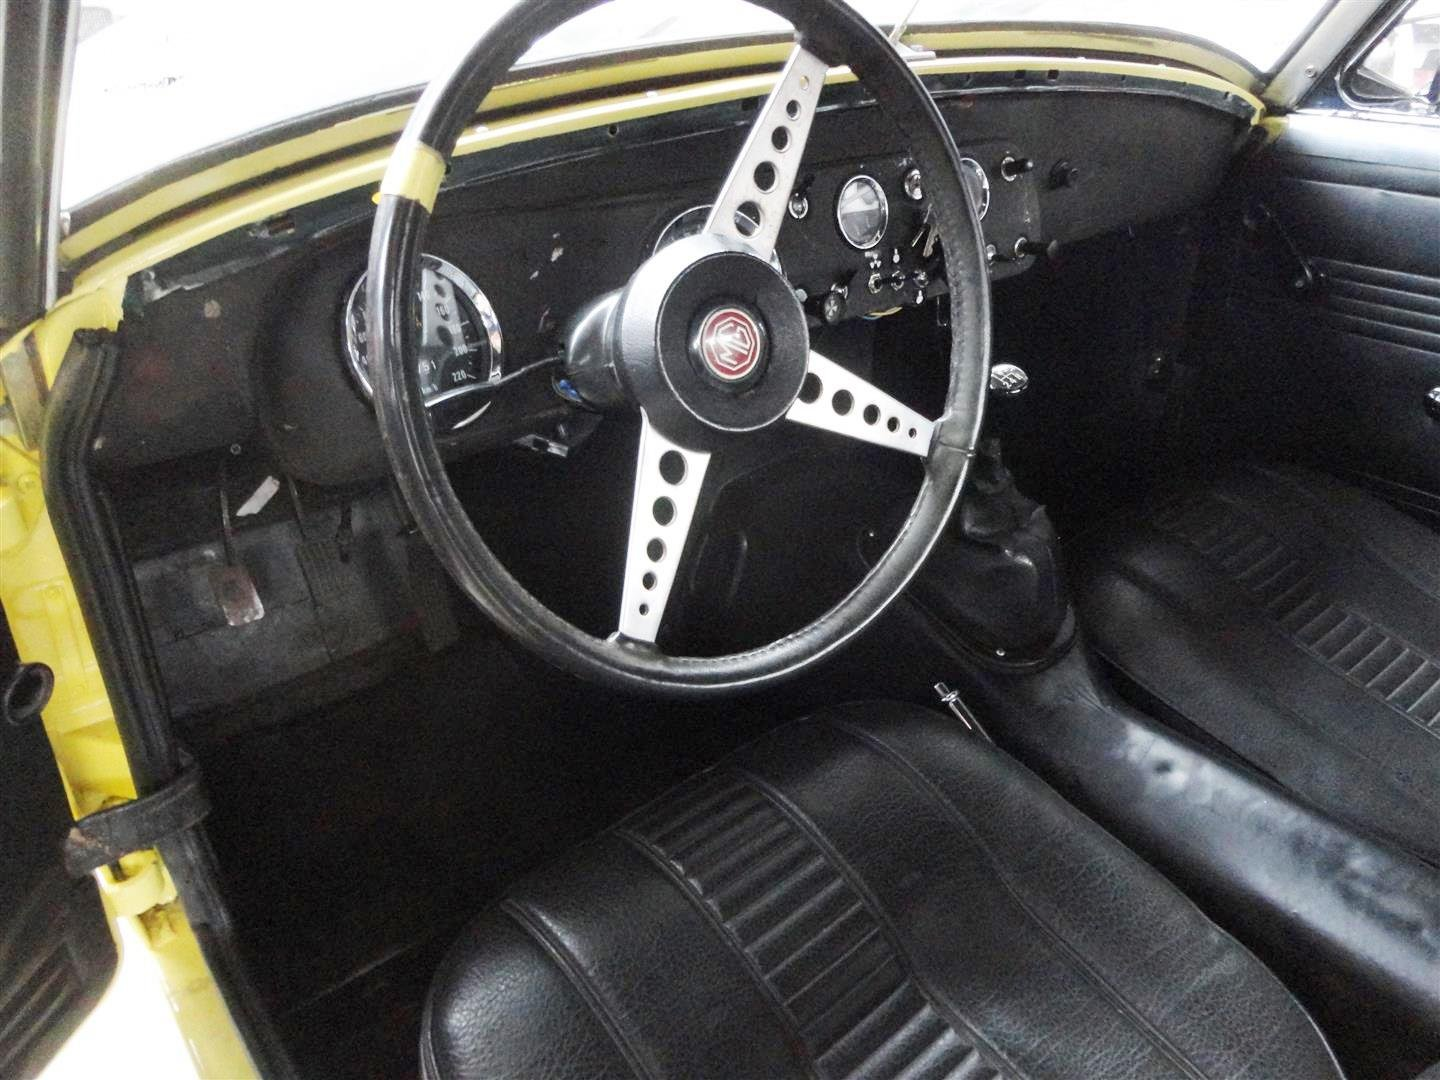 MG Midget Frogeye sebring 1970 For Sale (picture 3 of 6)